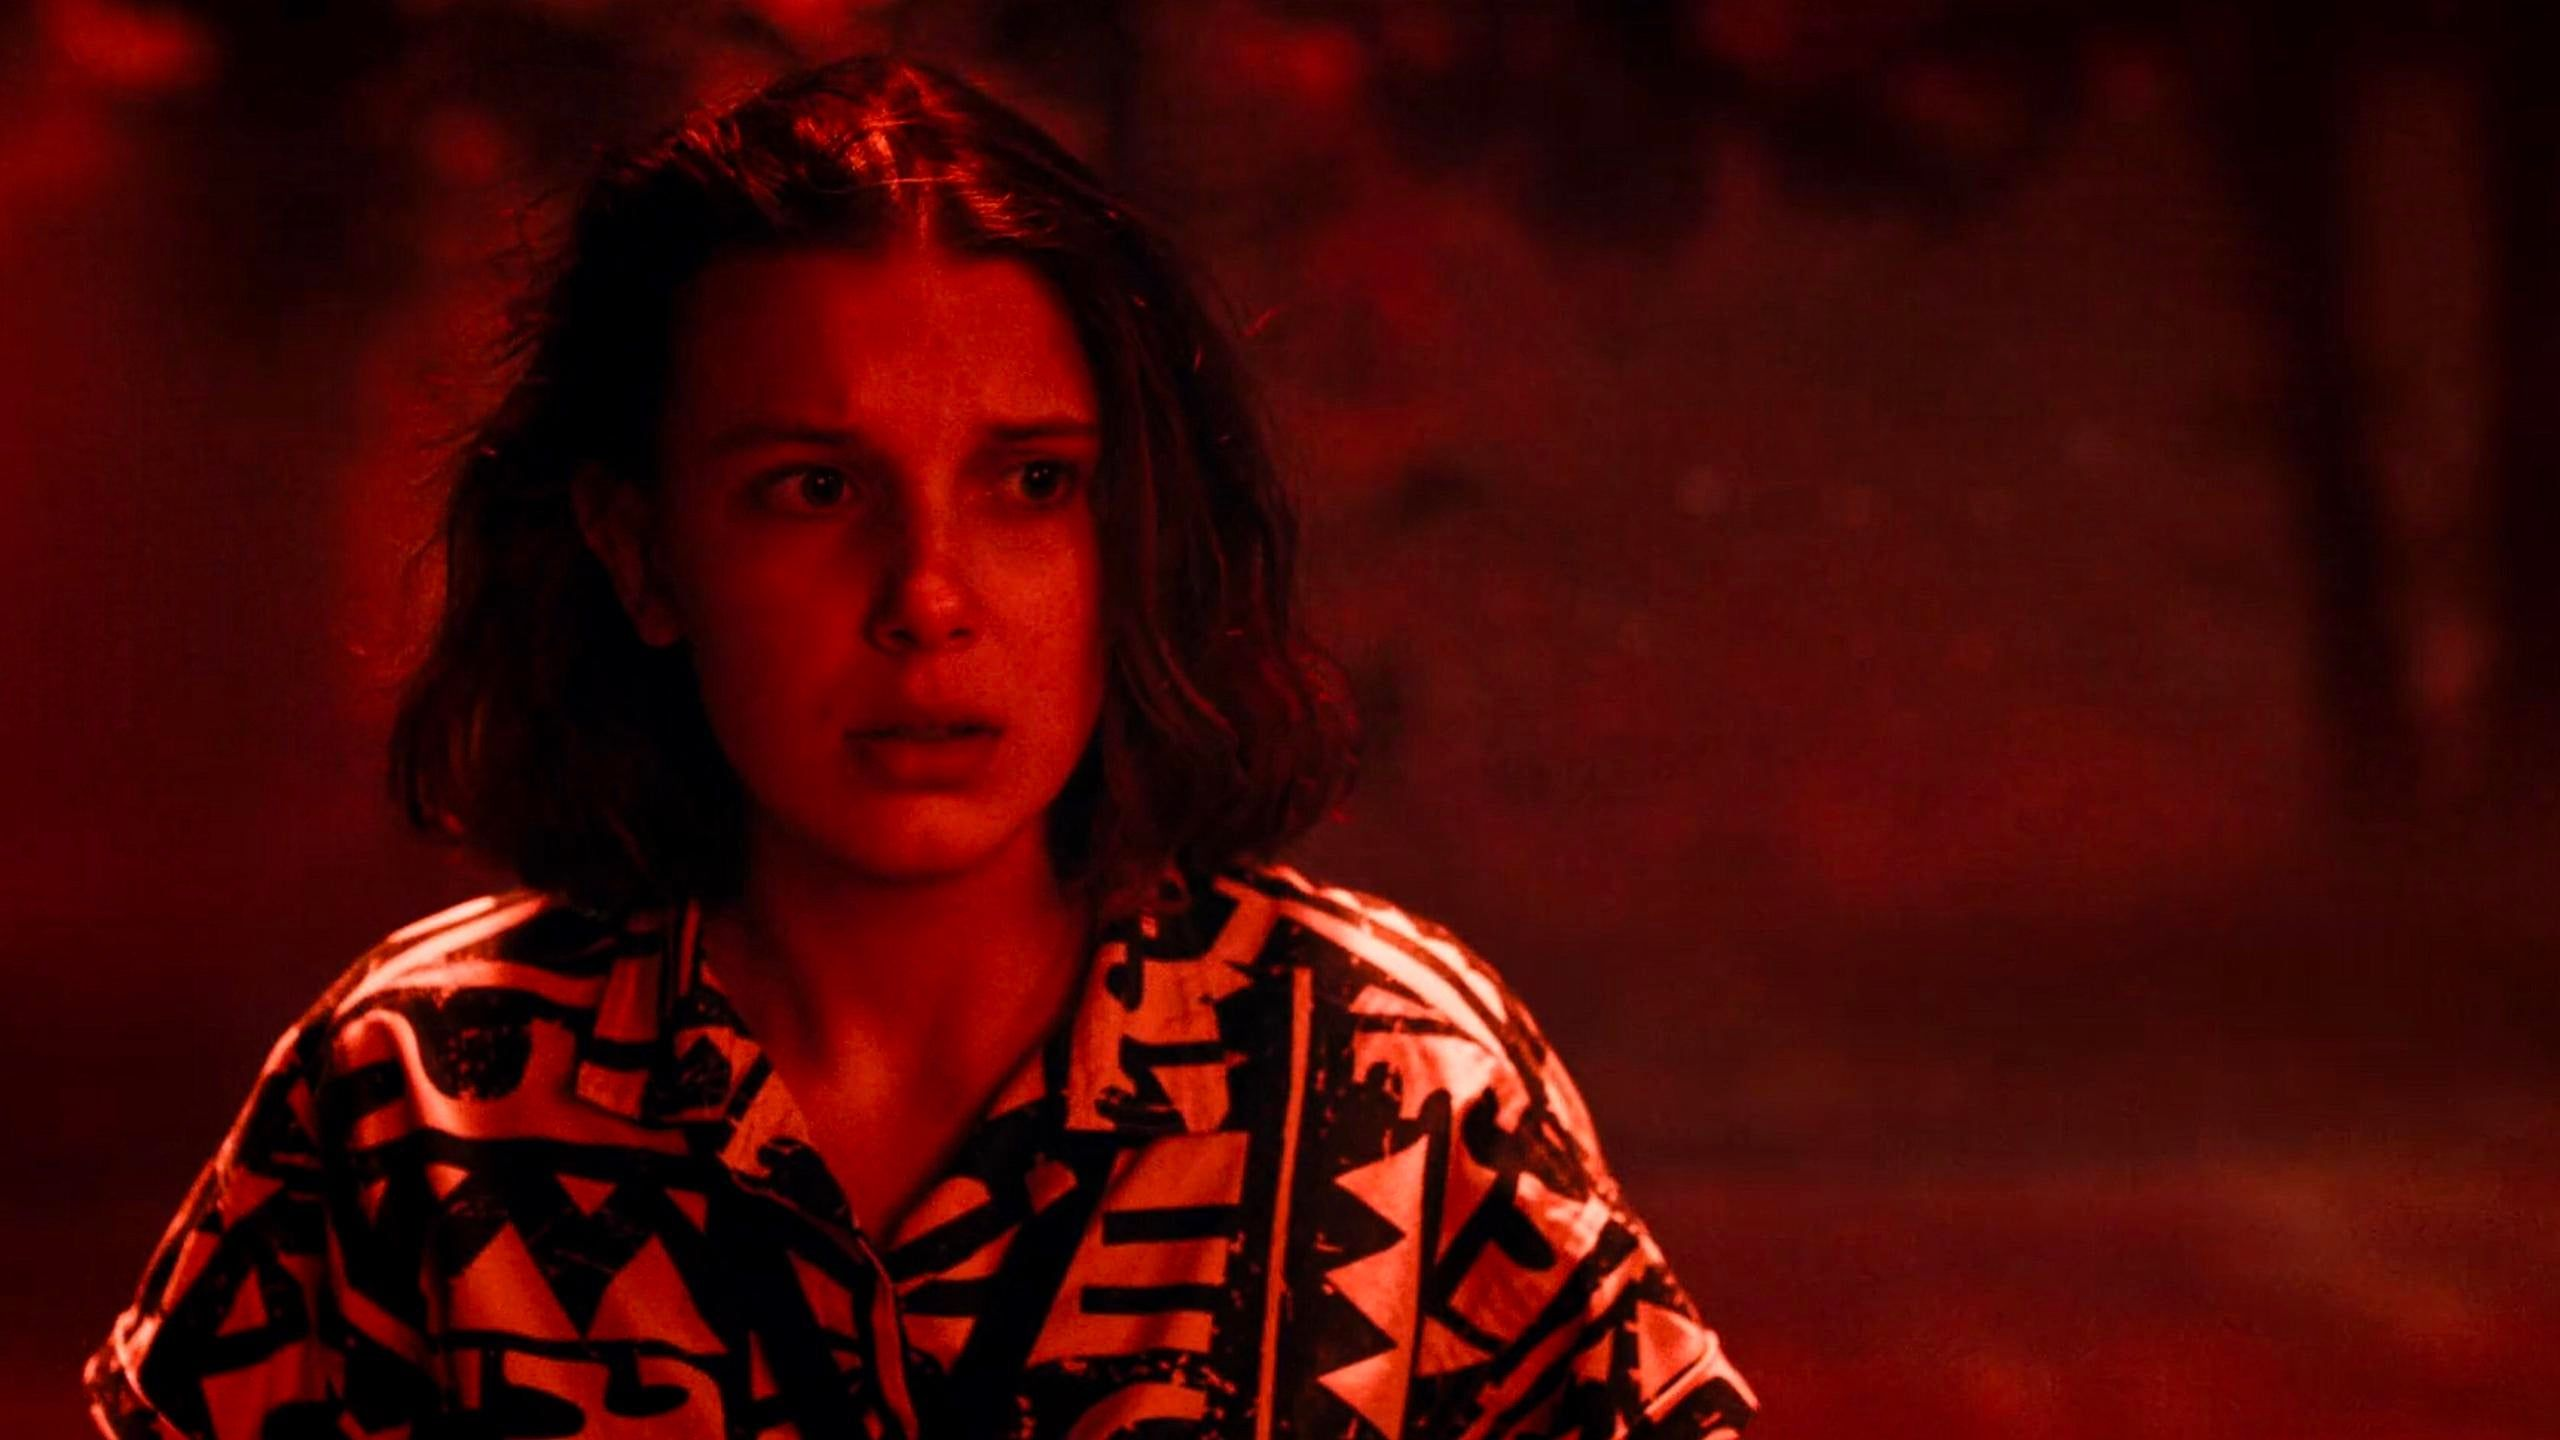 Eleven From Stranger Things S3 Hd Wallpaper Stranger Things Wallpaper Stranger Things Stranger Things Characters